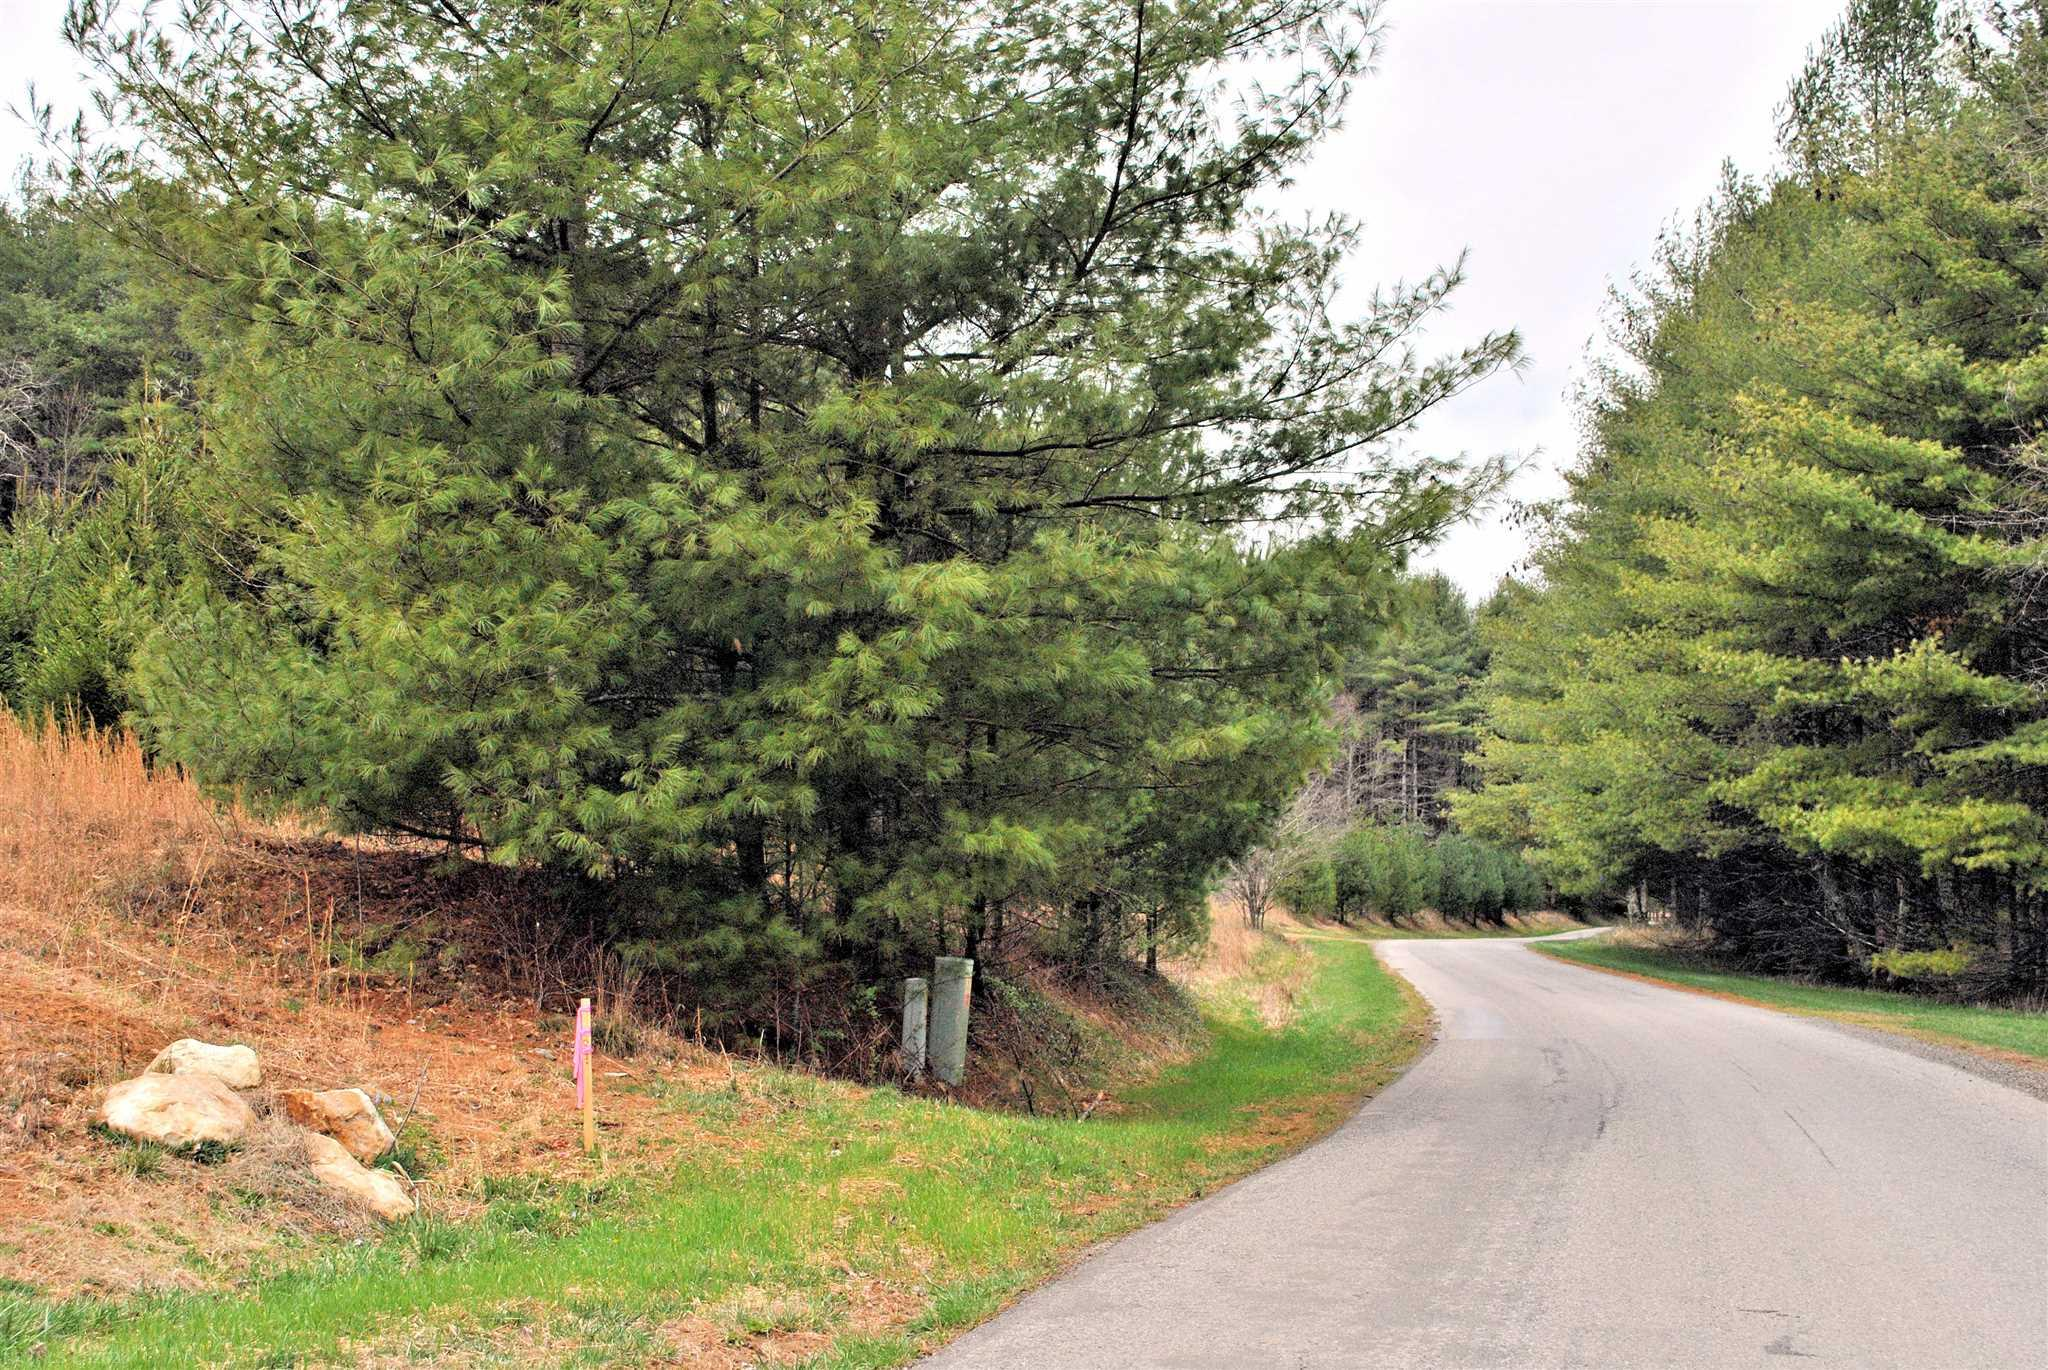 Over 7+ acres in Floyd County with open land, mature hardwood trees and planted spruce trees has many options and building sites.  Long frontage on a paved state maintained road.